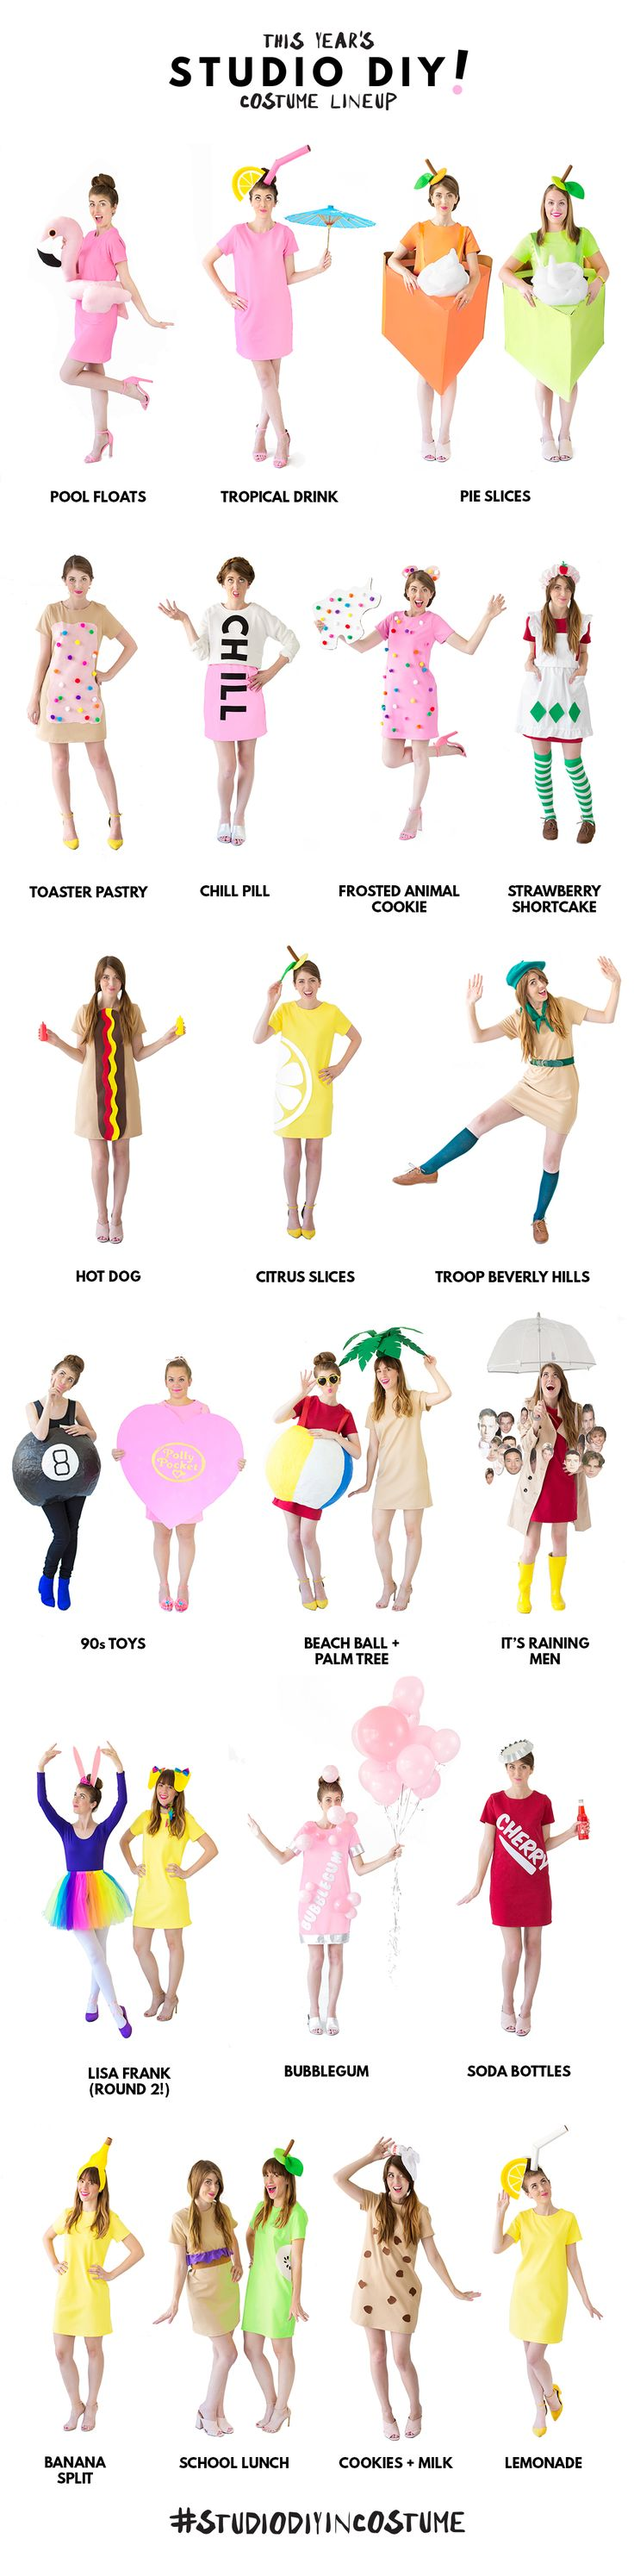 Studio DIY 2016 Costume Lineup